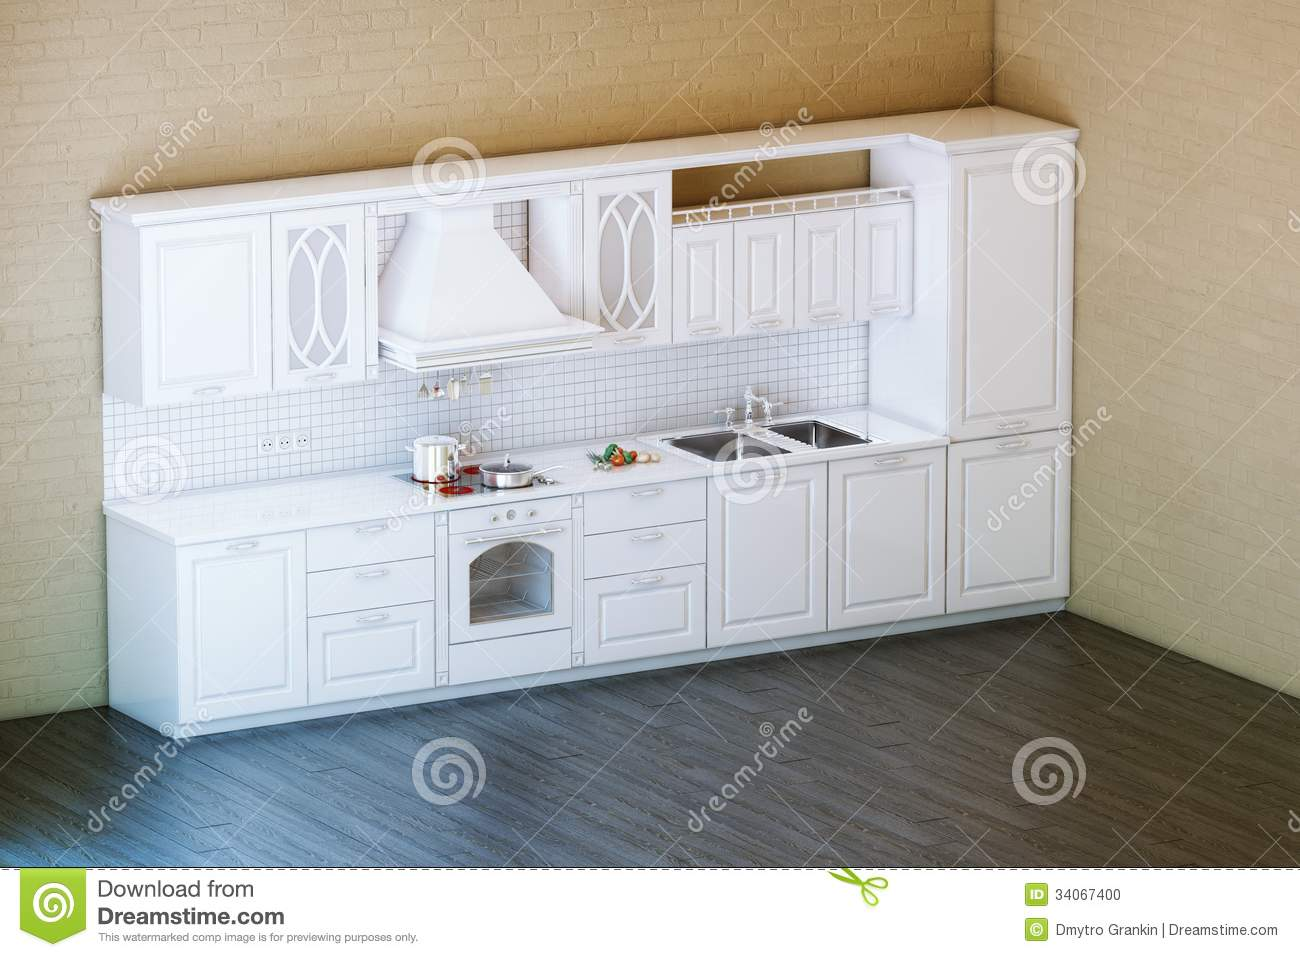 Stock Photo Classic White Kitchen Cabi  Parquet Floor Design Image34067400 on physiotherapy floor plans